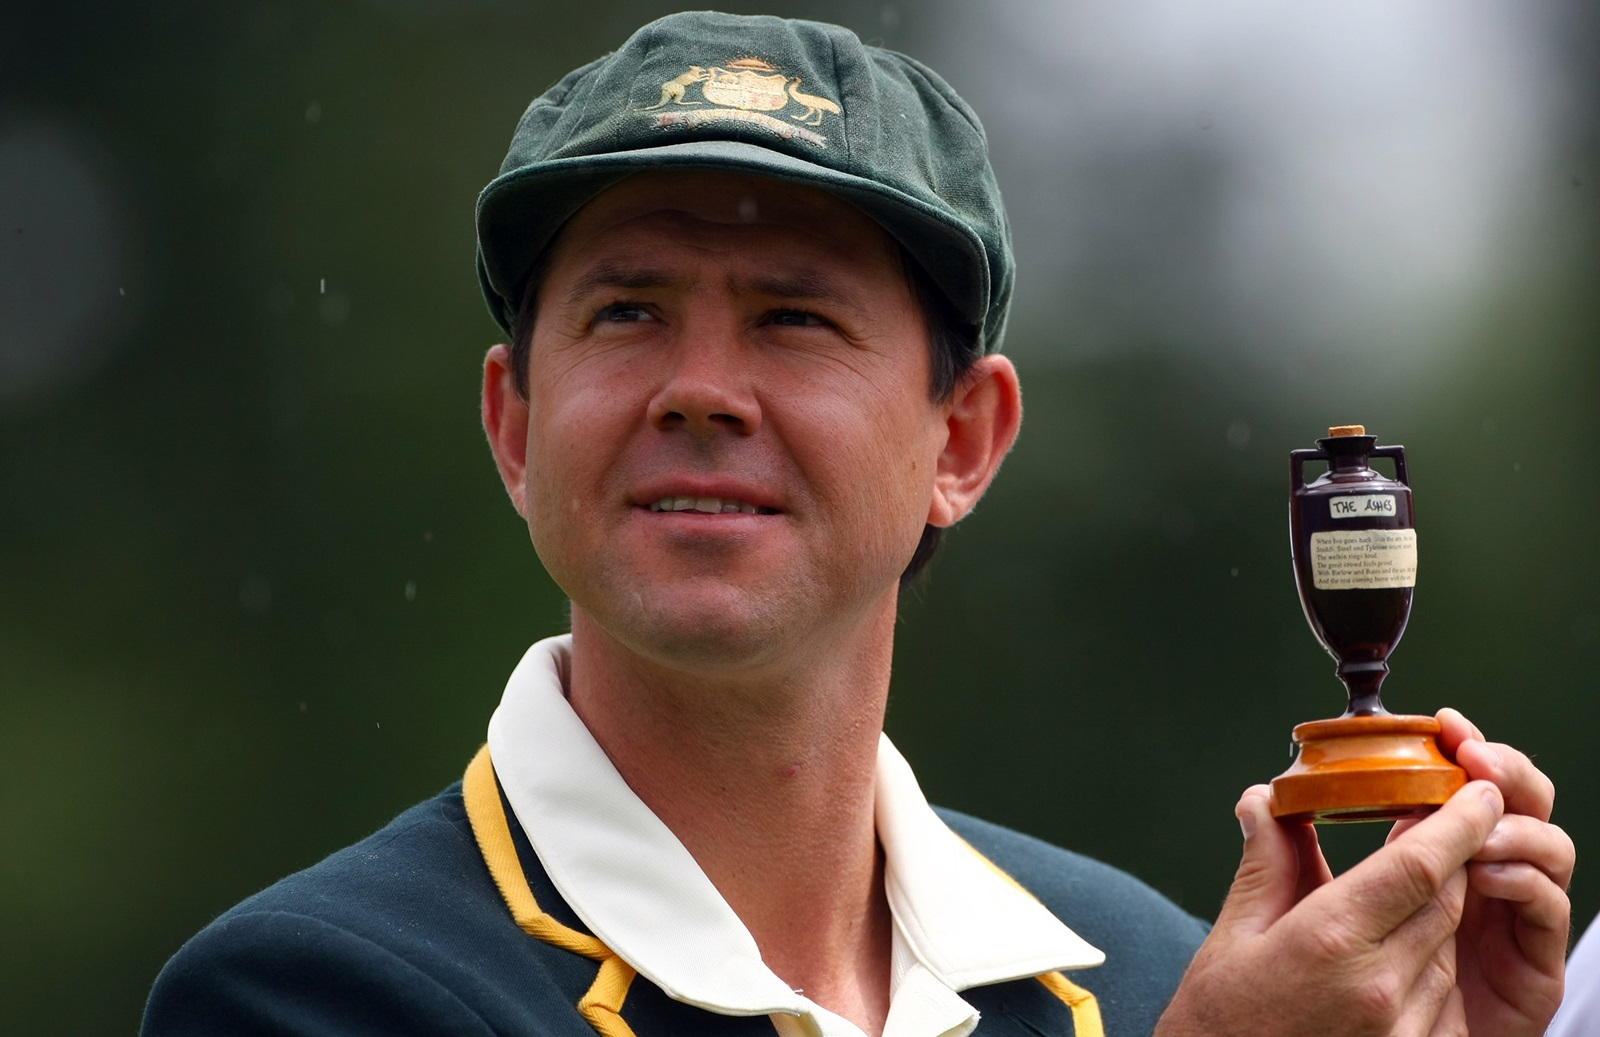 Ricky Ponting joins the Cricket Network ...